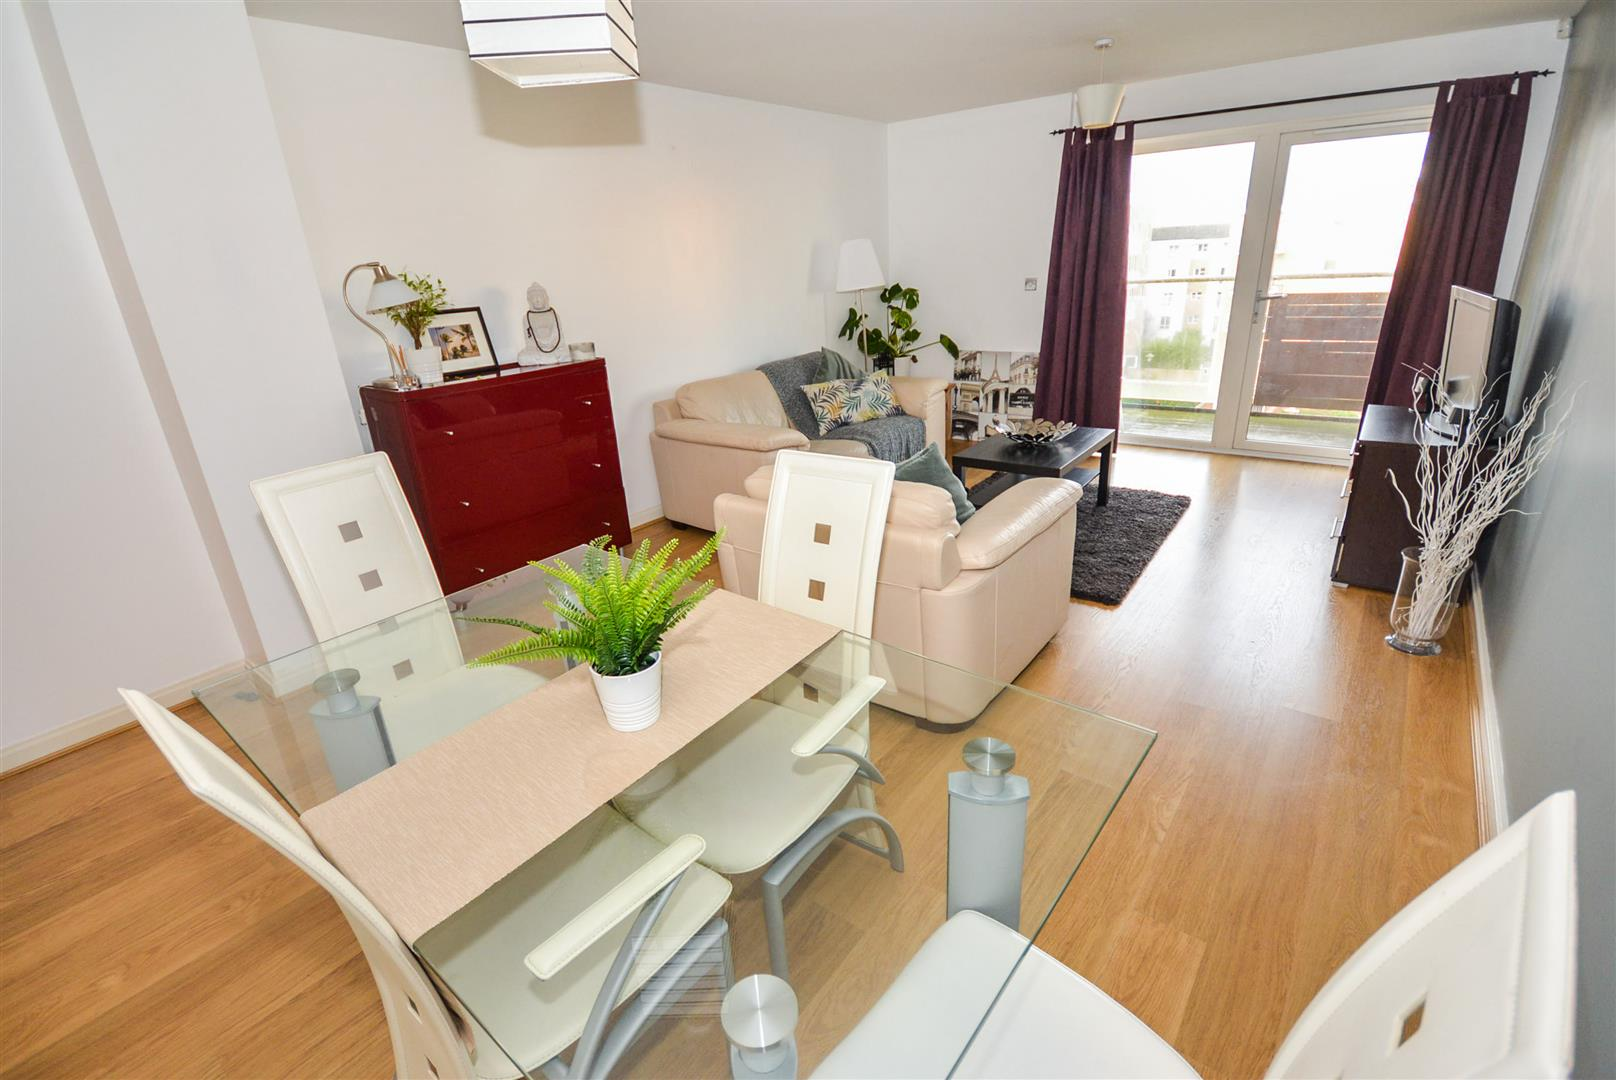 1 bed apartment for sale in Chandlery Way, Cardiff  - Property Image 5